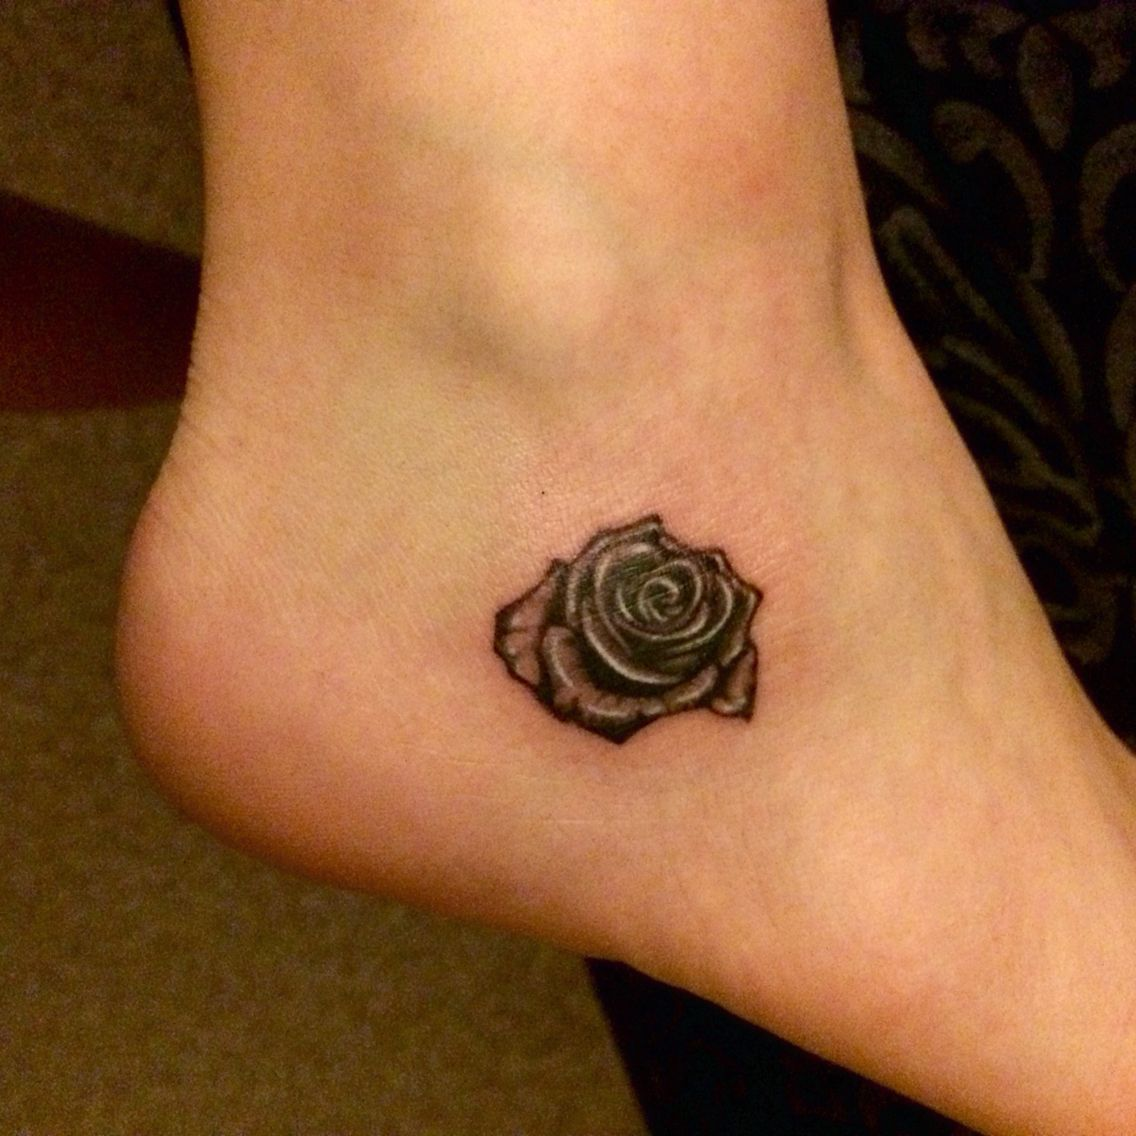 Small Black And White Rose Ankle Tattoo Small Rose Tattoo Rose Tattoo On Ankle Ankle Tattoo